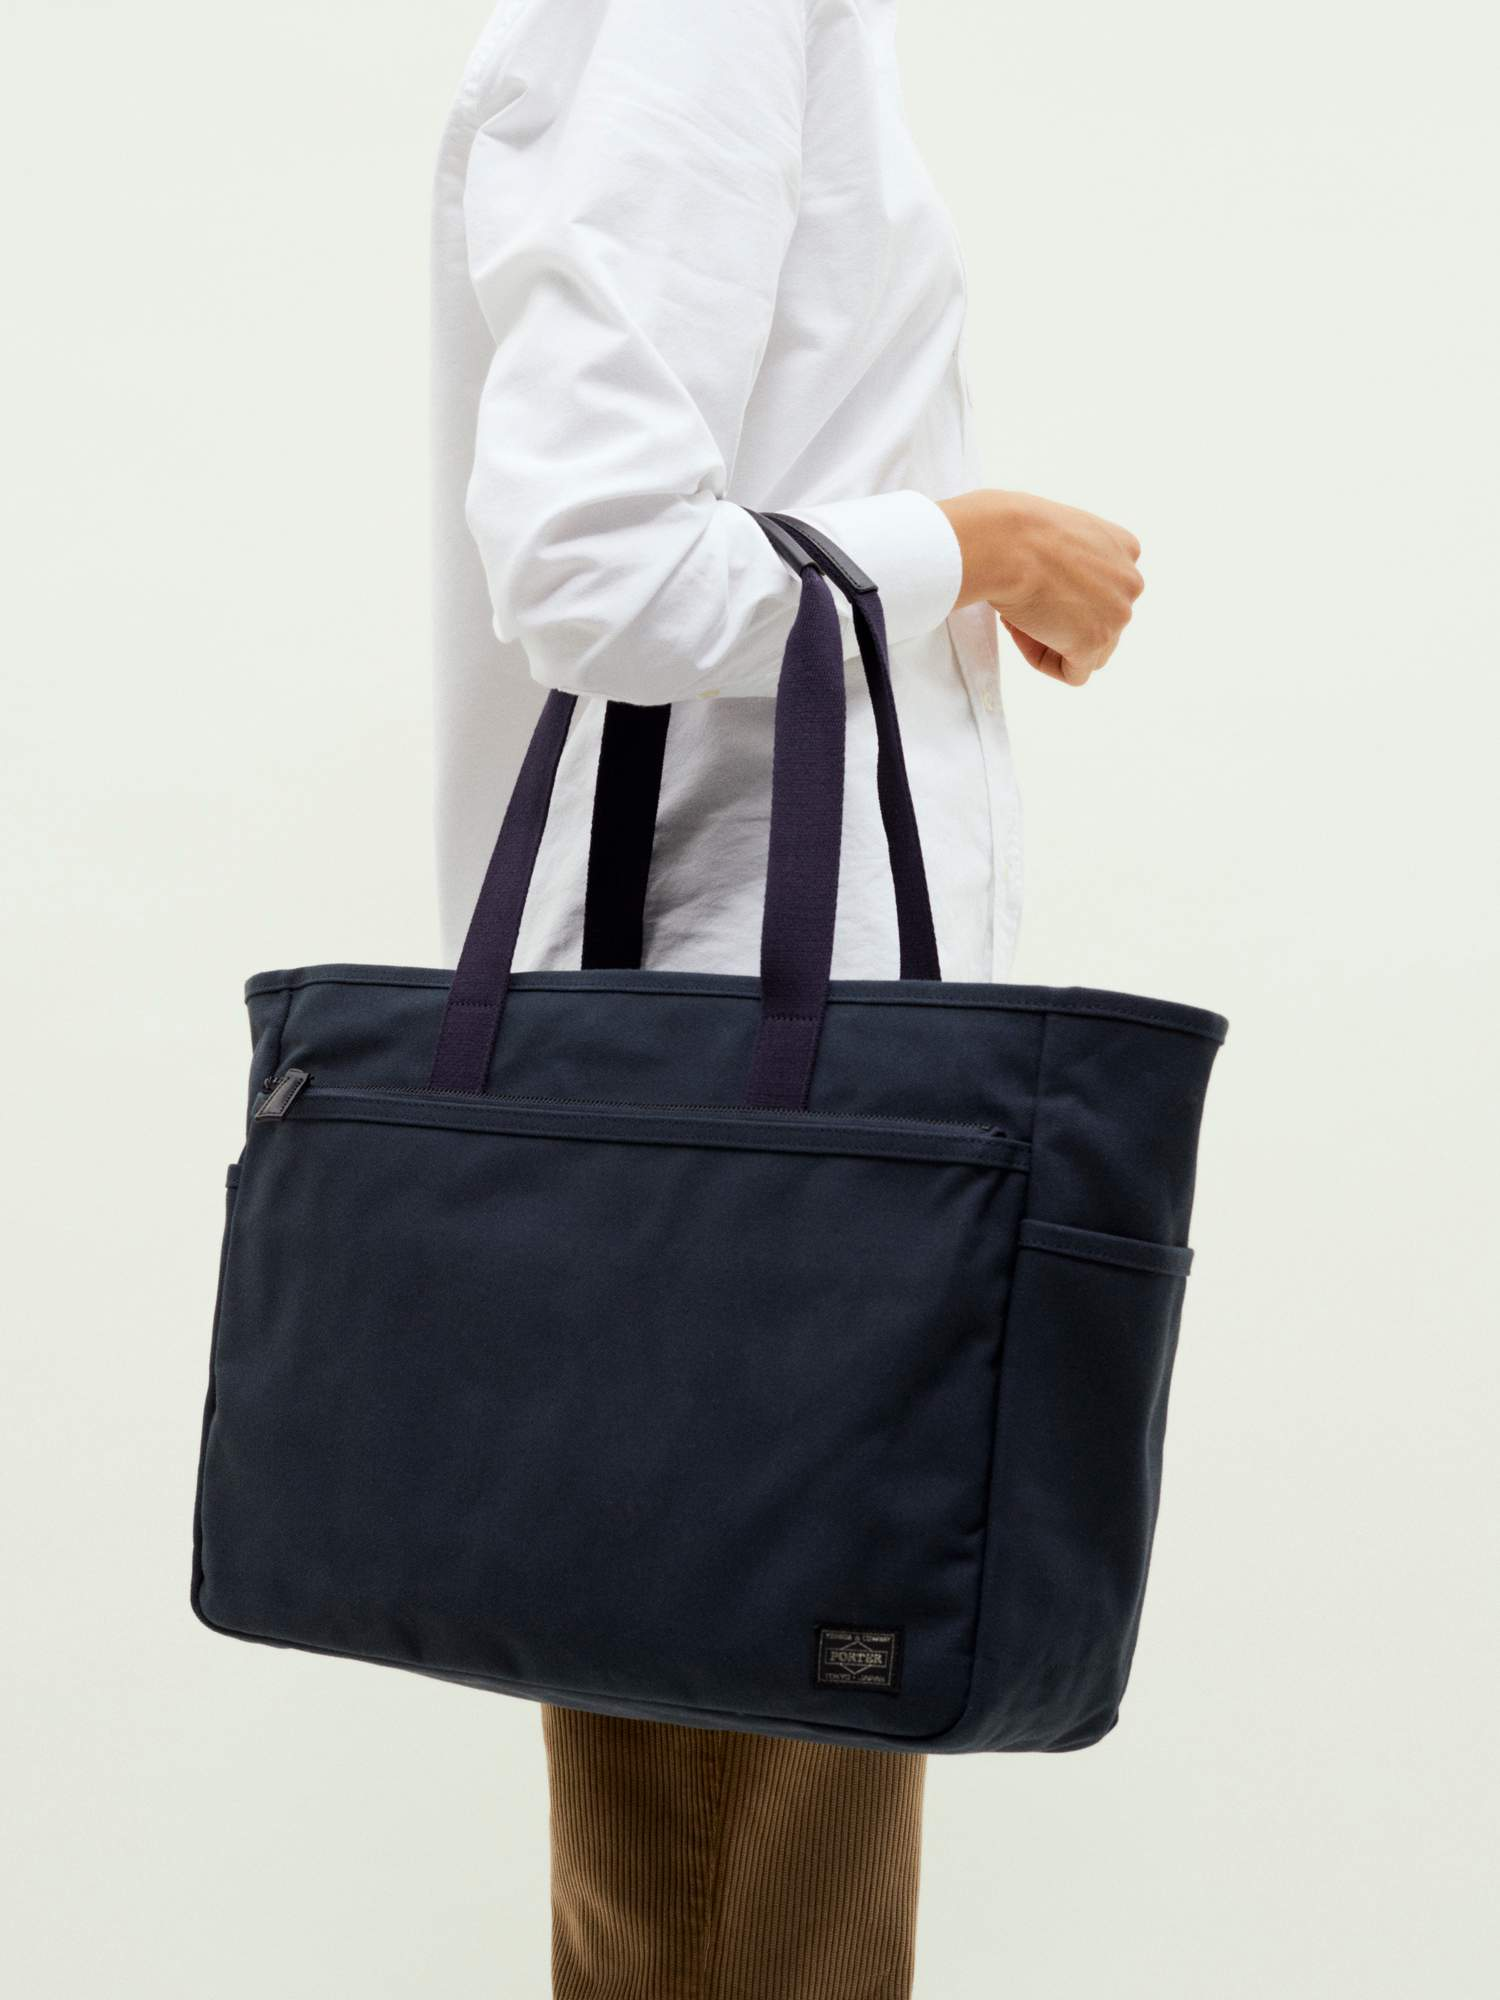 20201204-travel-tote-navy_068.jpg